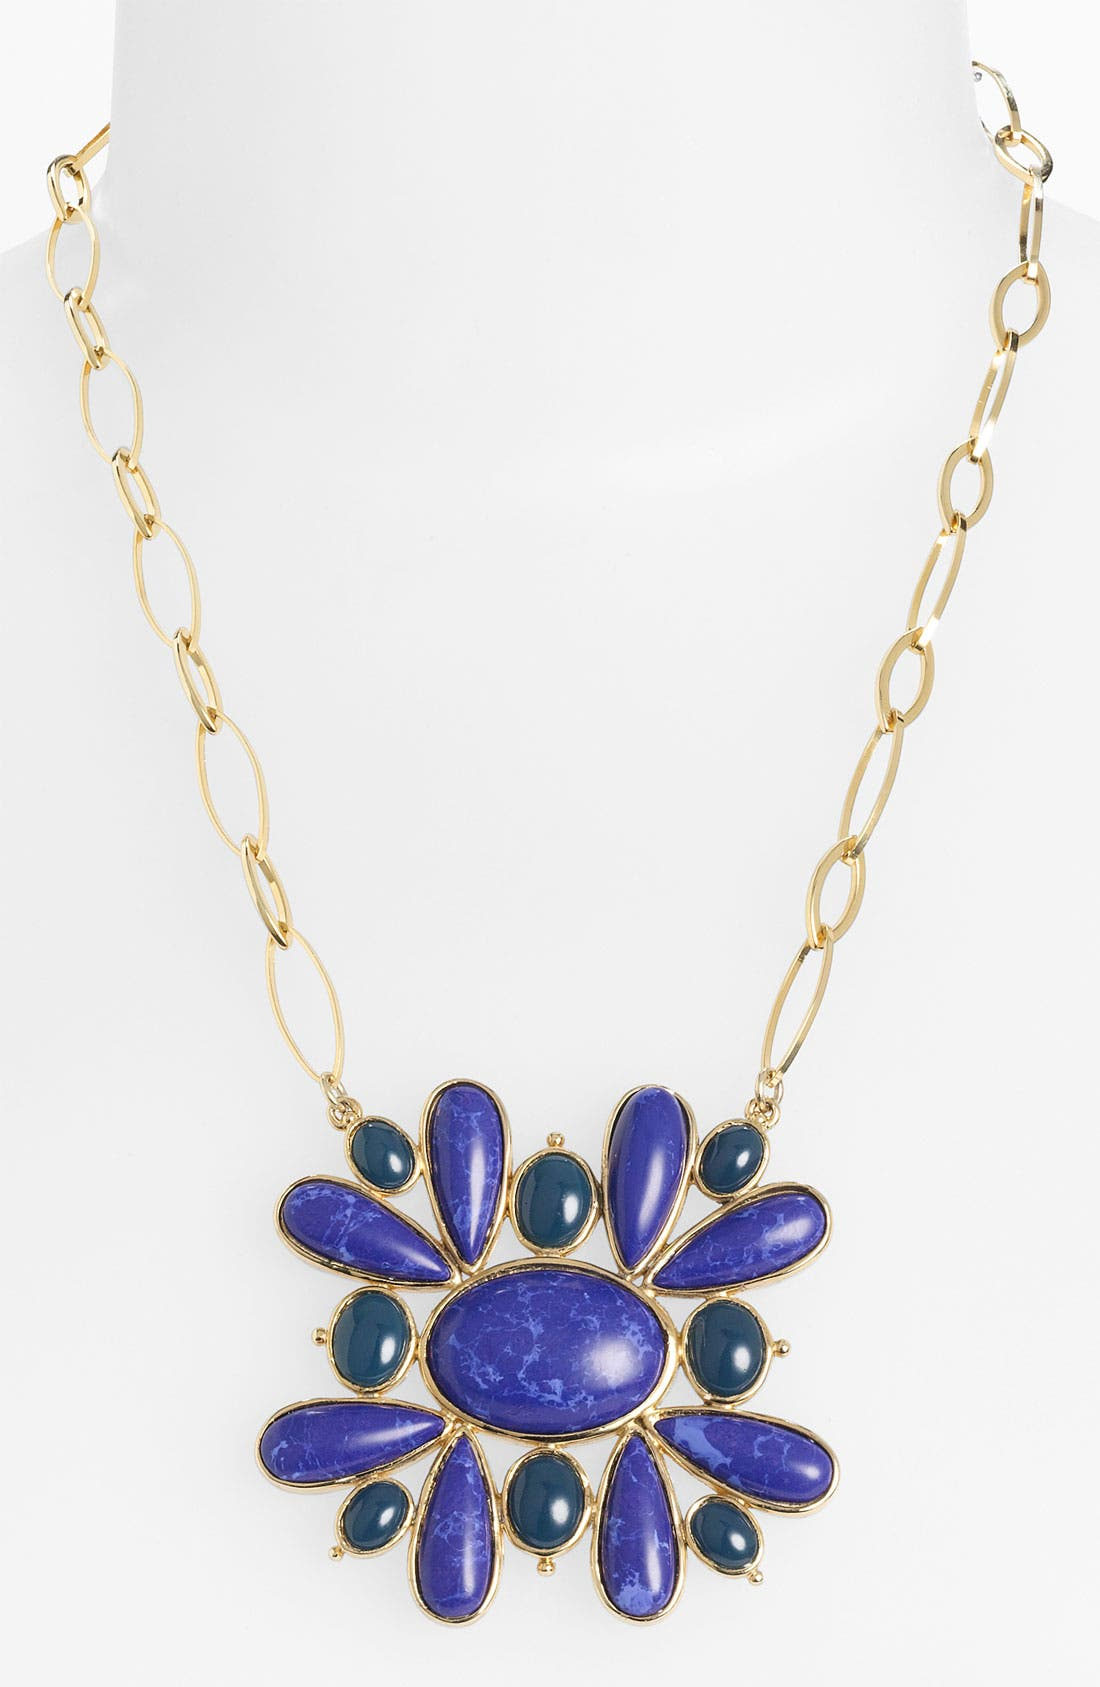 NORDSTROM 'Lapis of Luxury' Statement Pendant Necklace, Main, color, 400